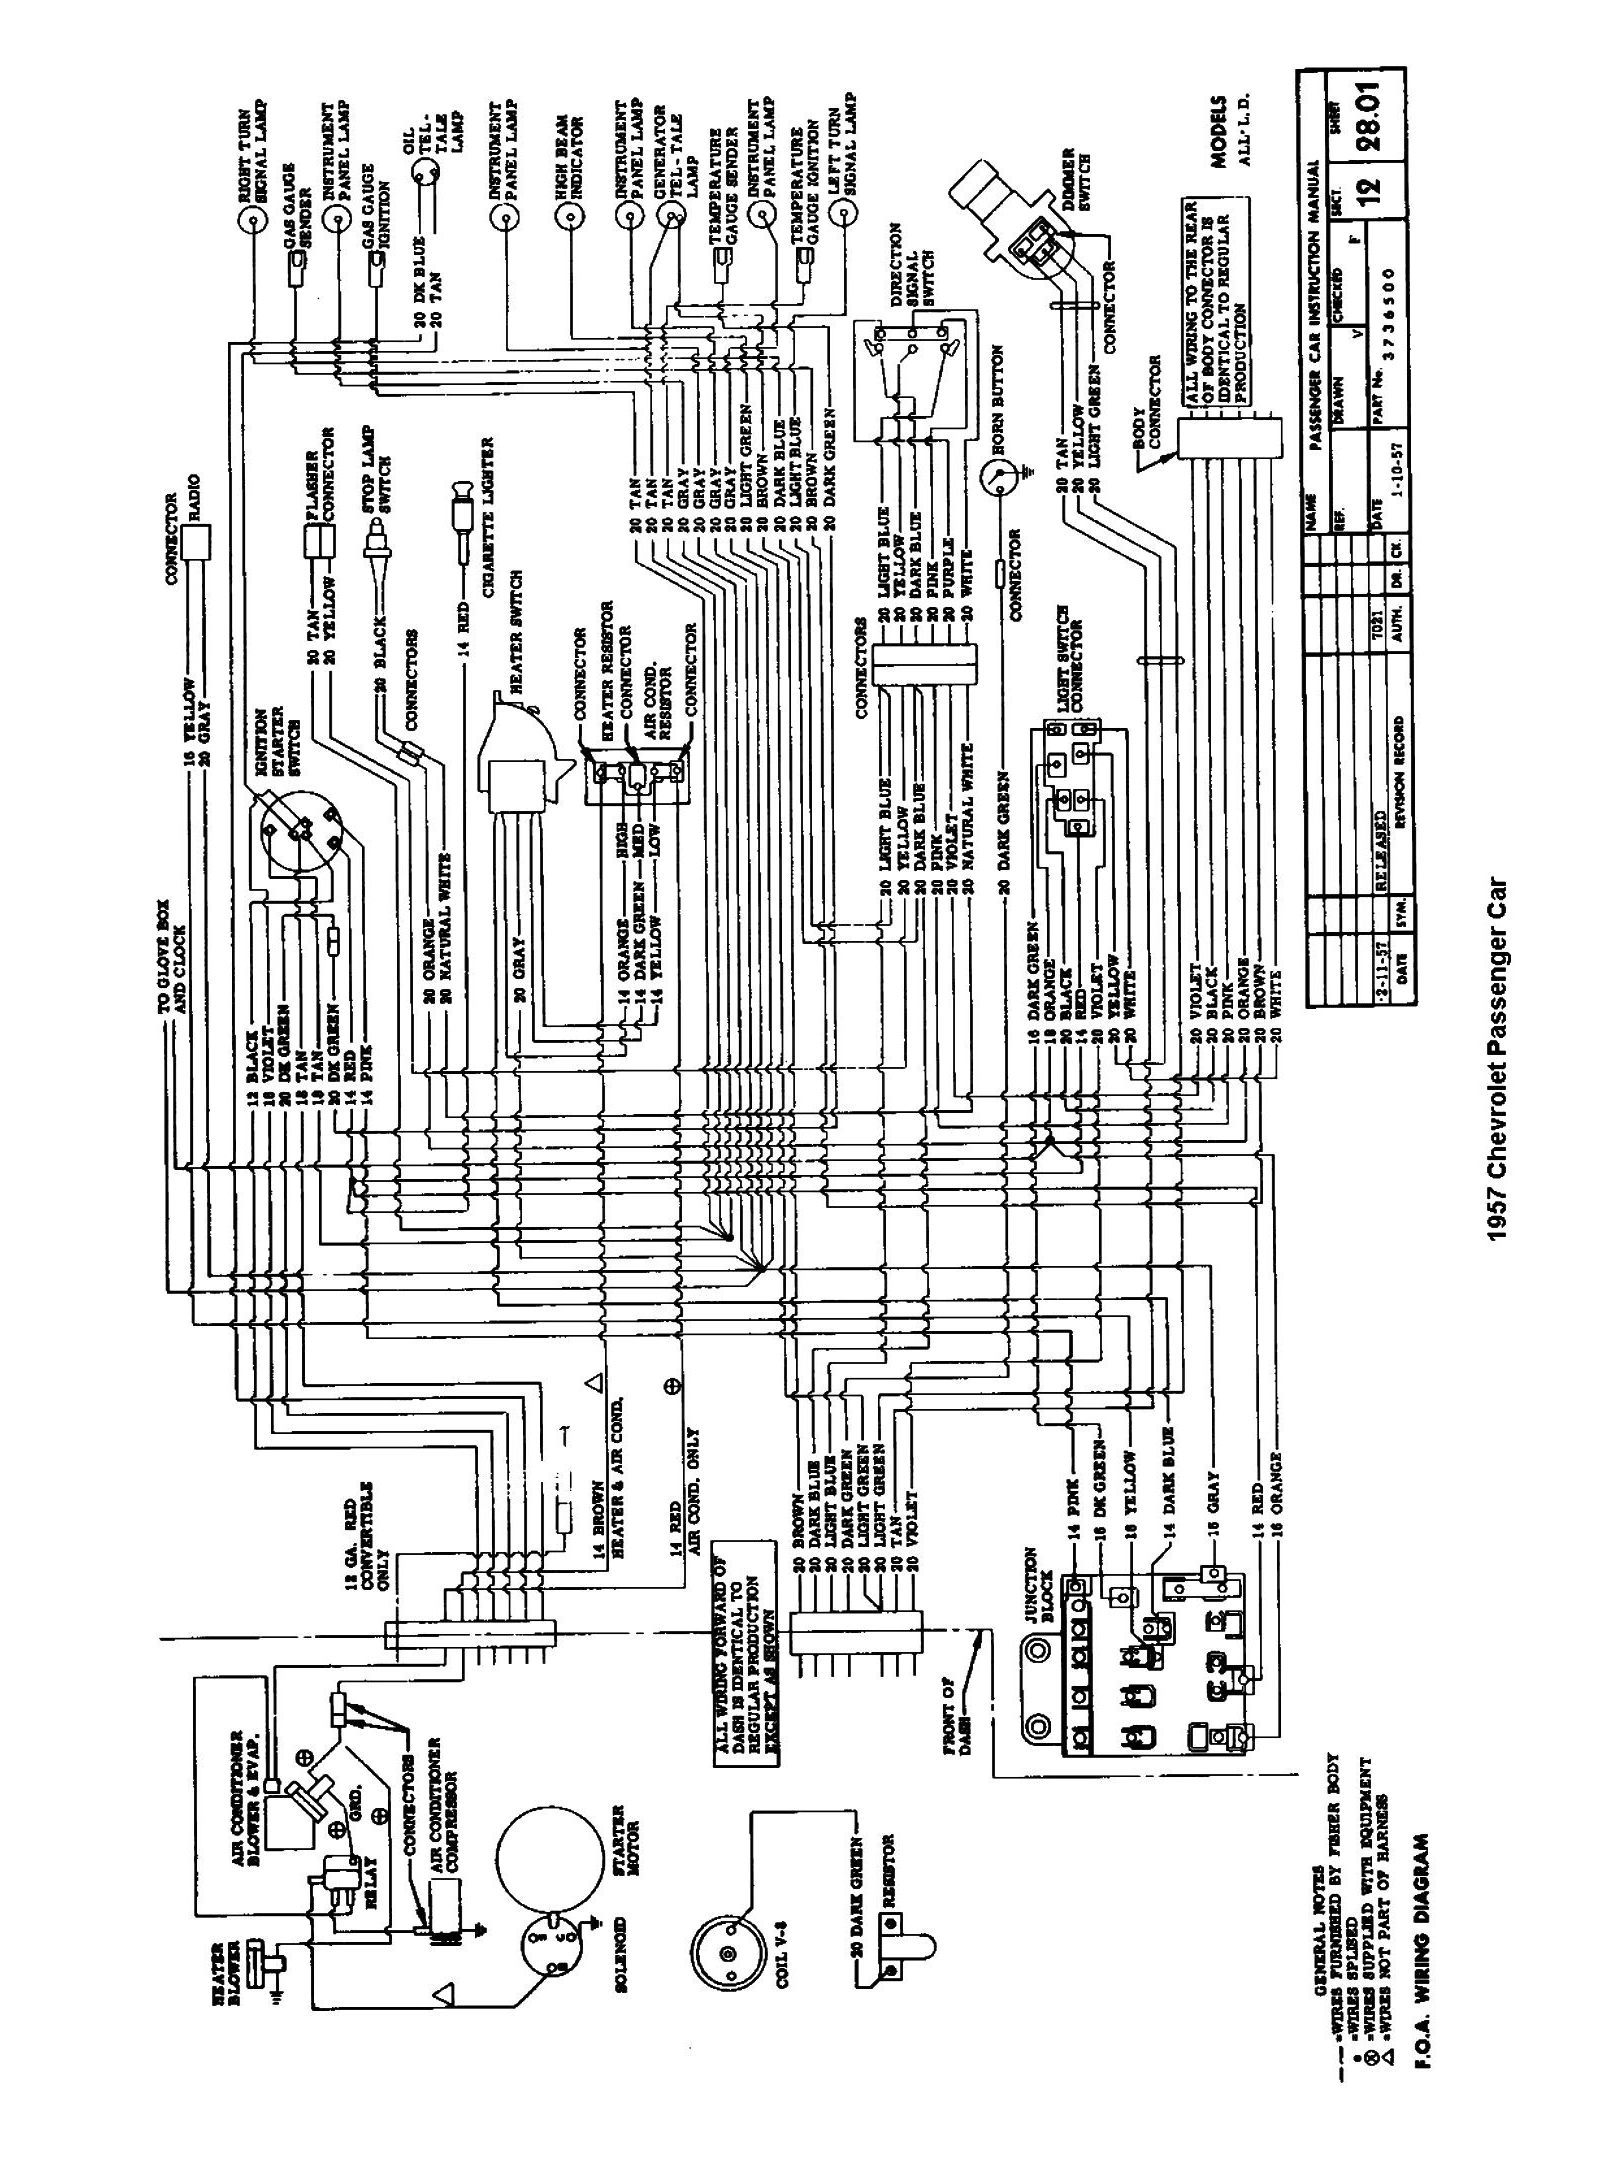 Chevy Wiring Diagrams Turn Light Switch Diagram 1957 Passenger Car 2